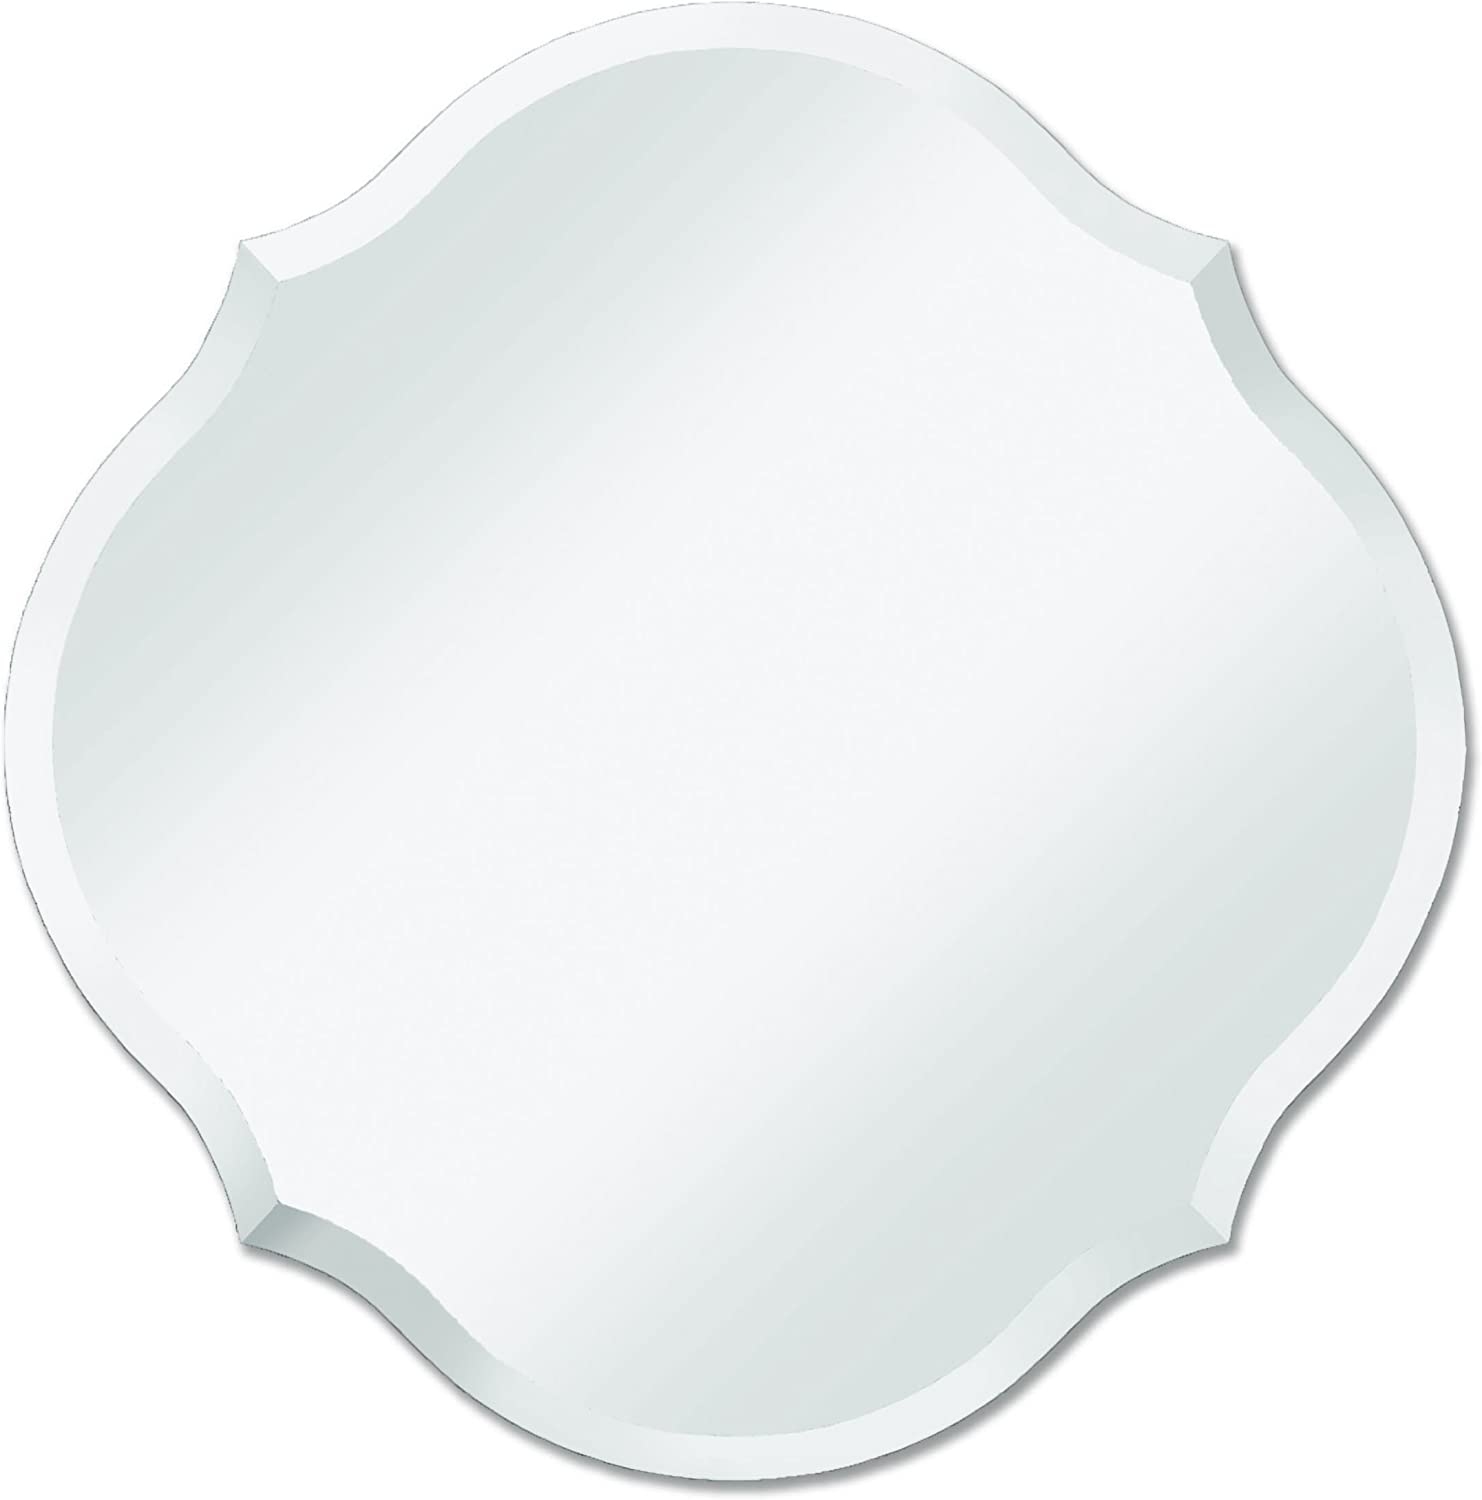 Frameless Mirror   Bathroom, Bedroom, Accent Mirror   Round with Scalloped Edges